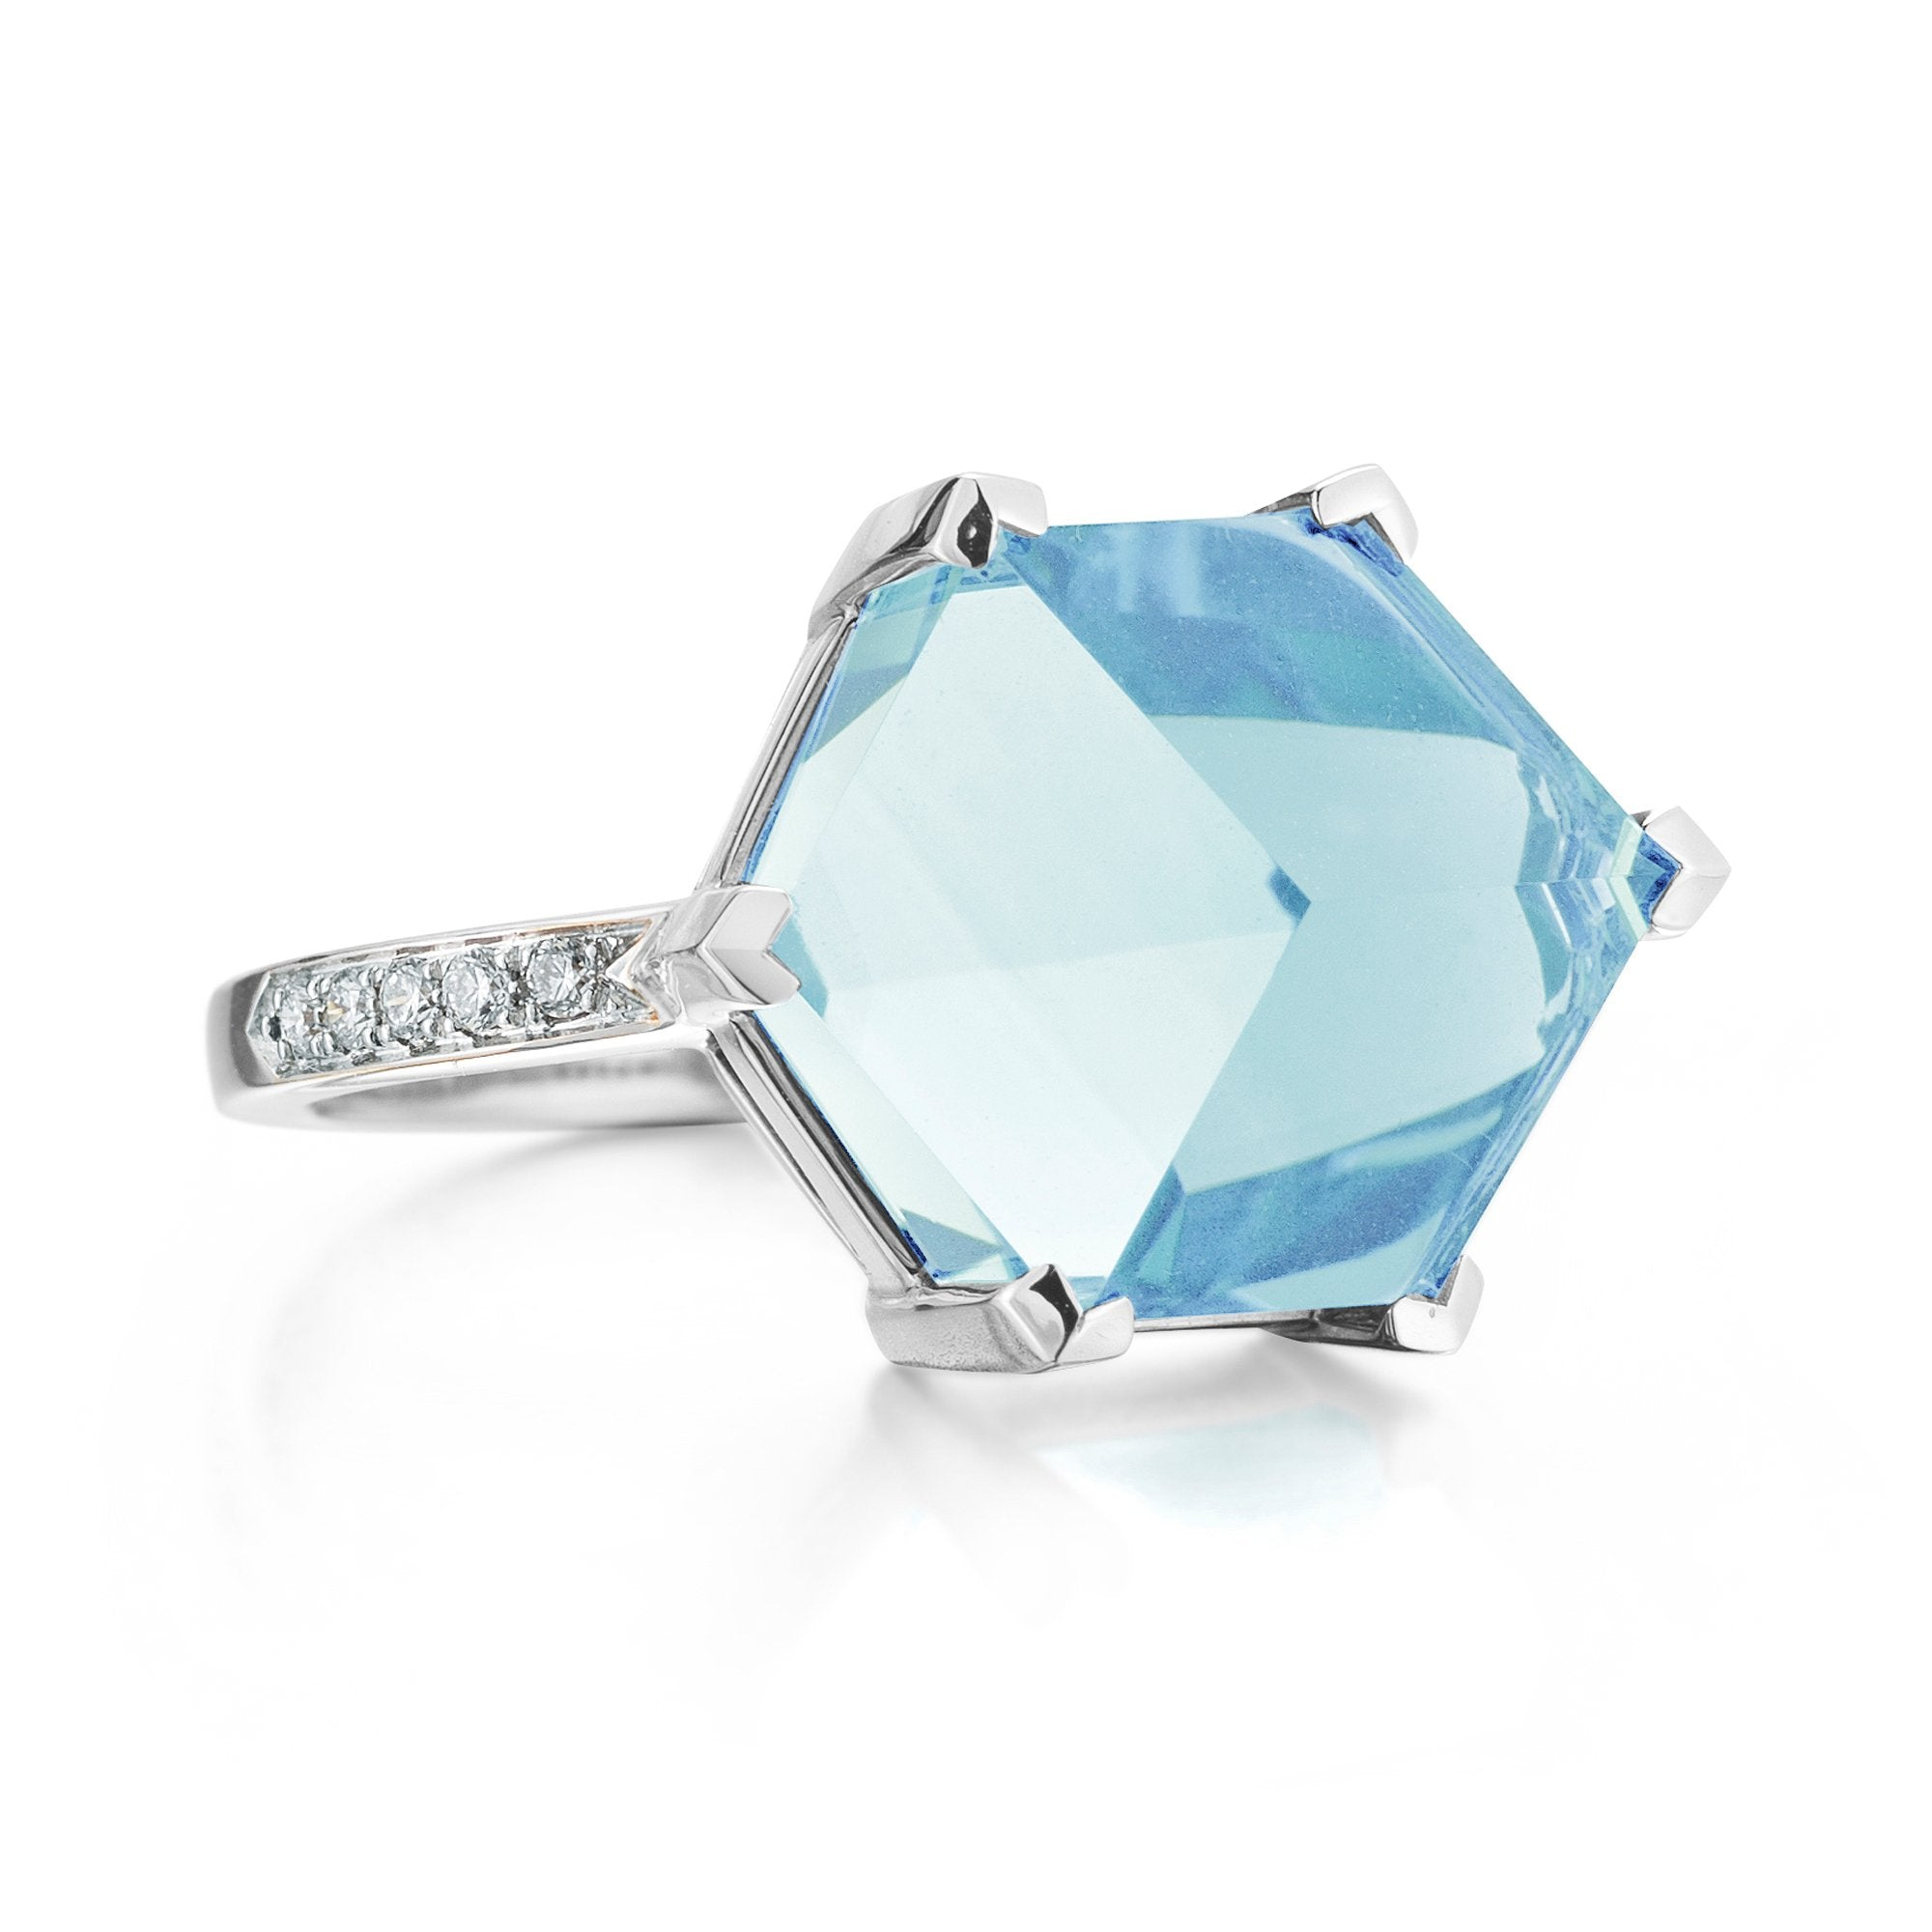 Blue Topaz 'Brillante® Valentina' Ring, Medium - Paolo Costagli - 1